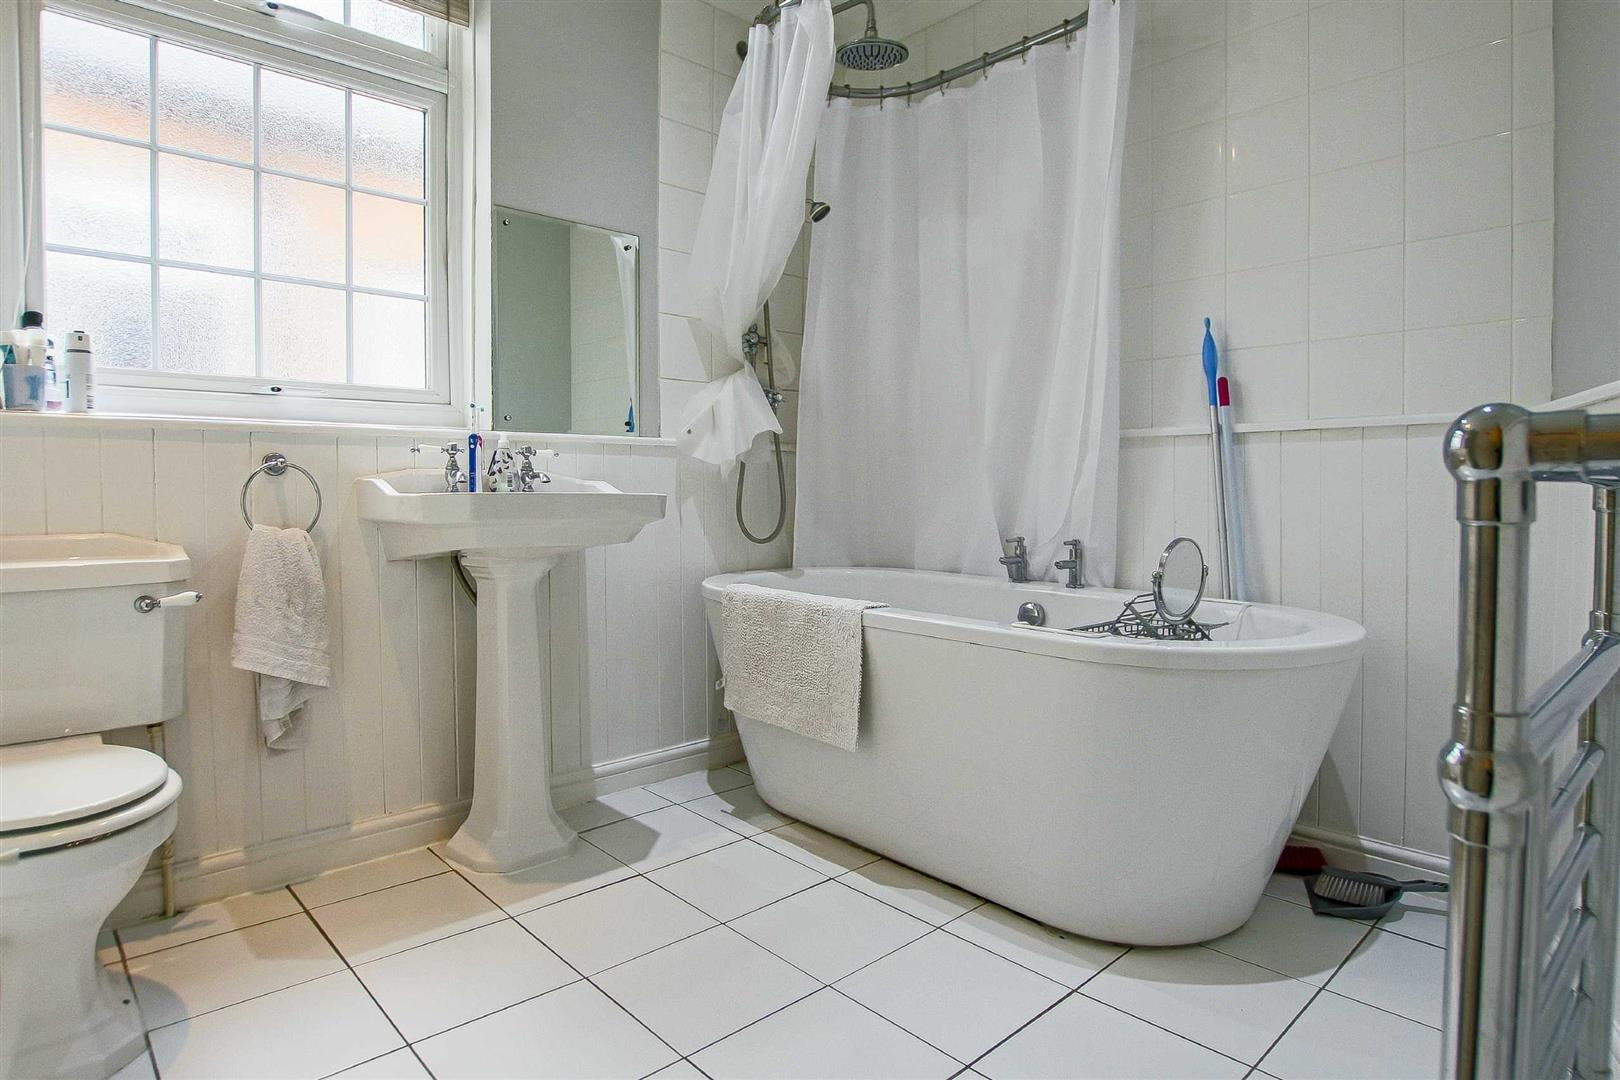 5 Bedroom Terraced House For Sale - Image 4